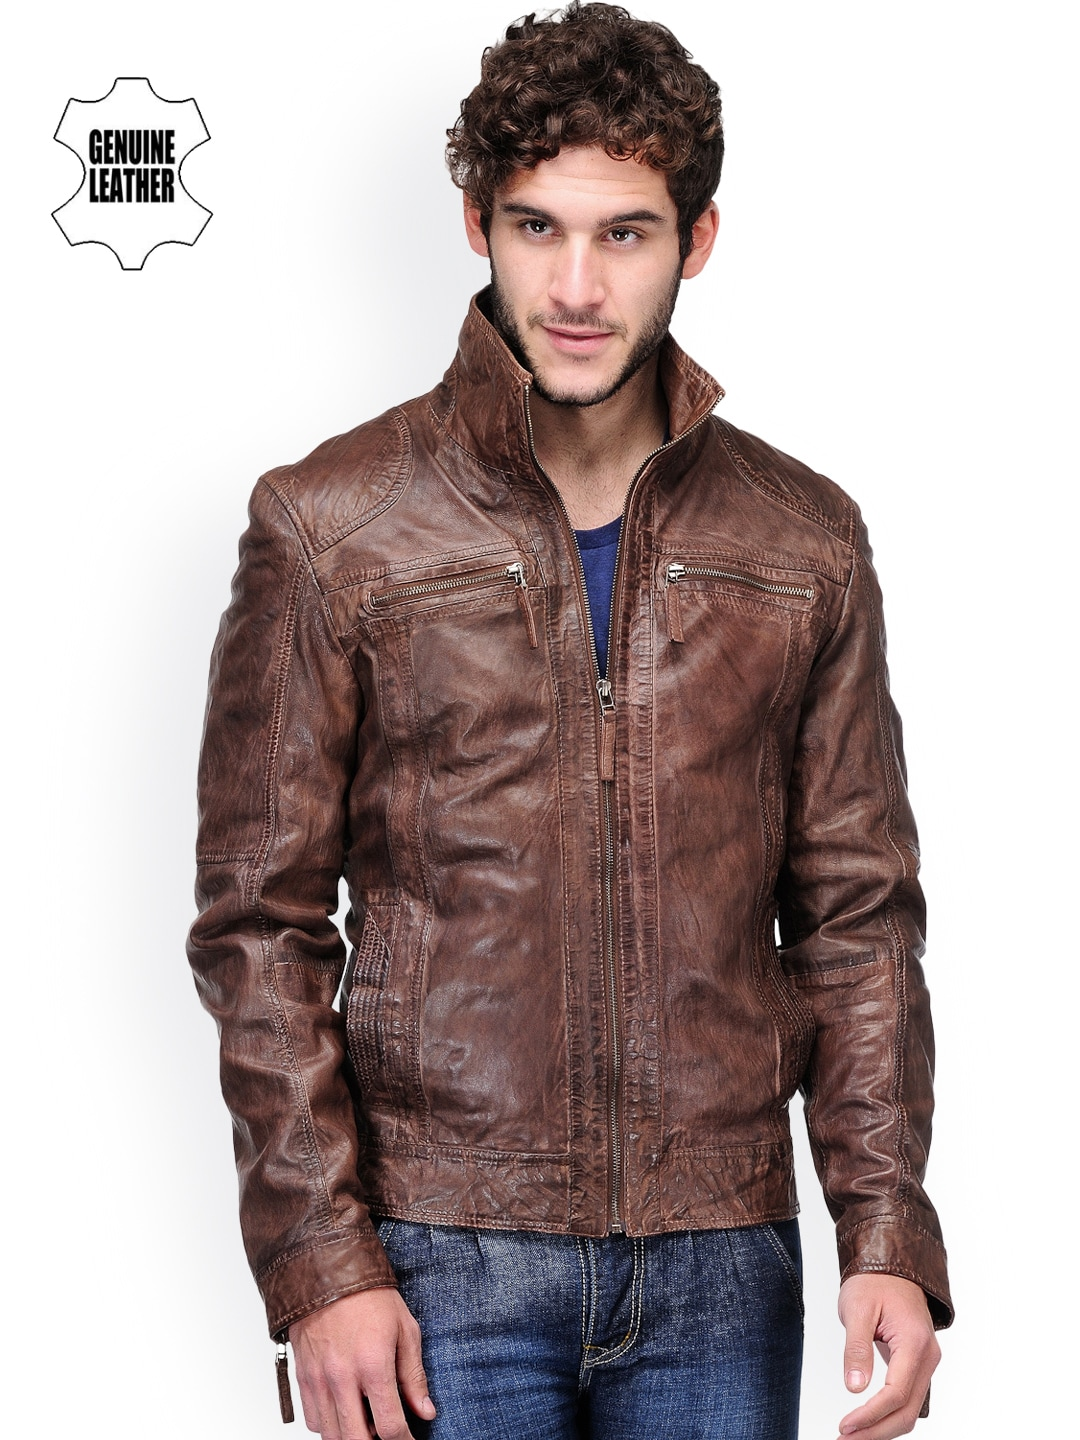 Leather Jackets for Men - Buy Men's Leather Jackets Online